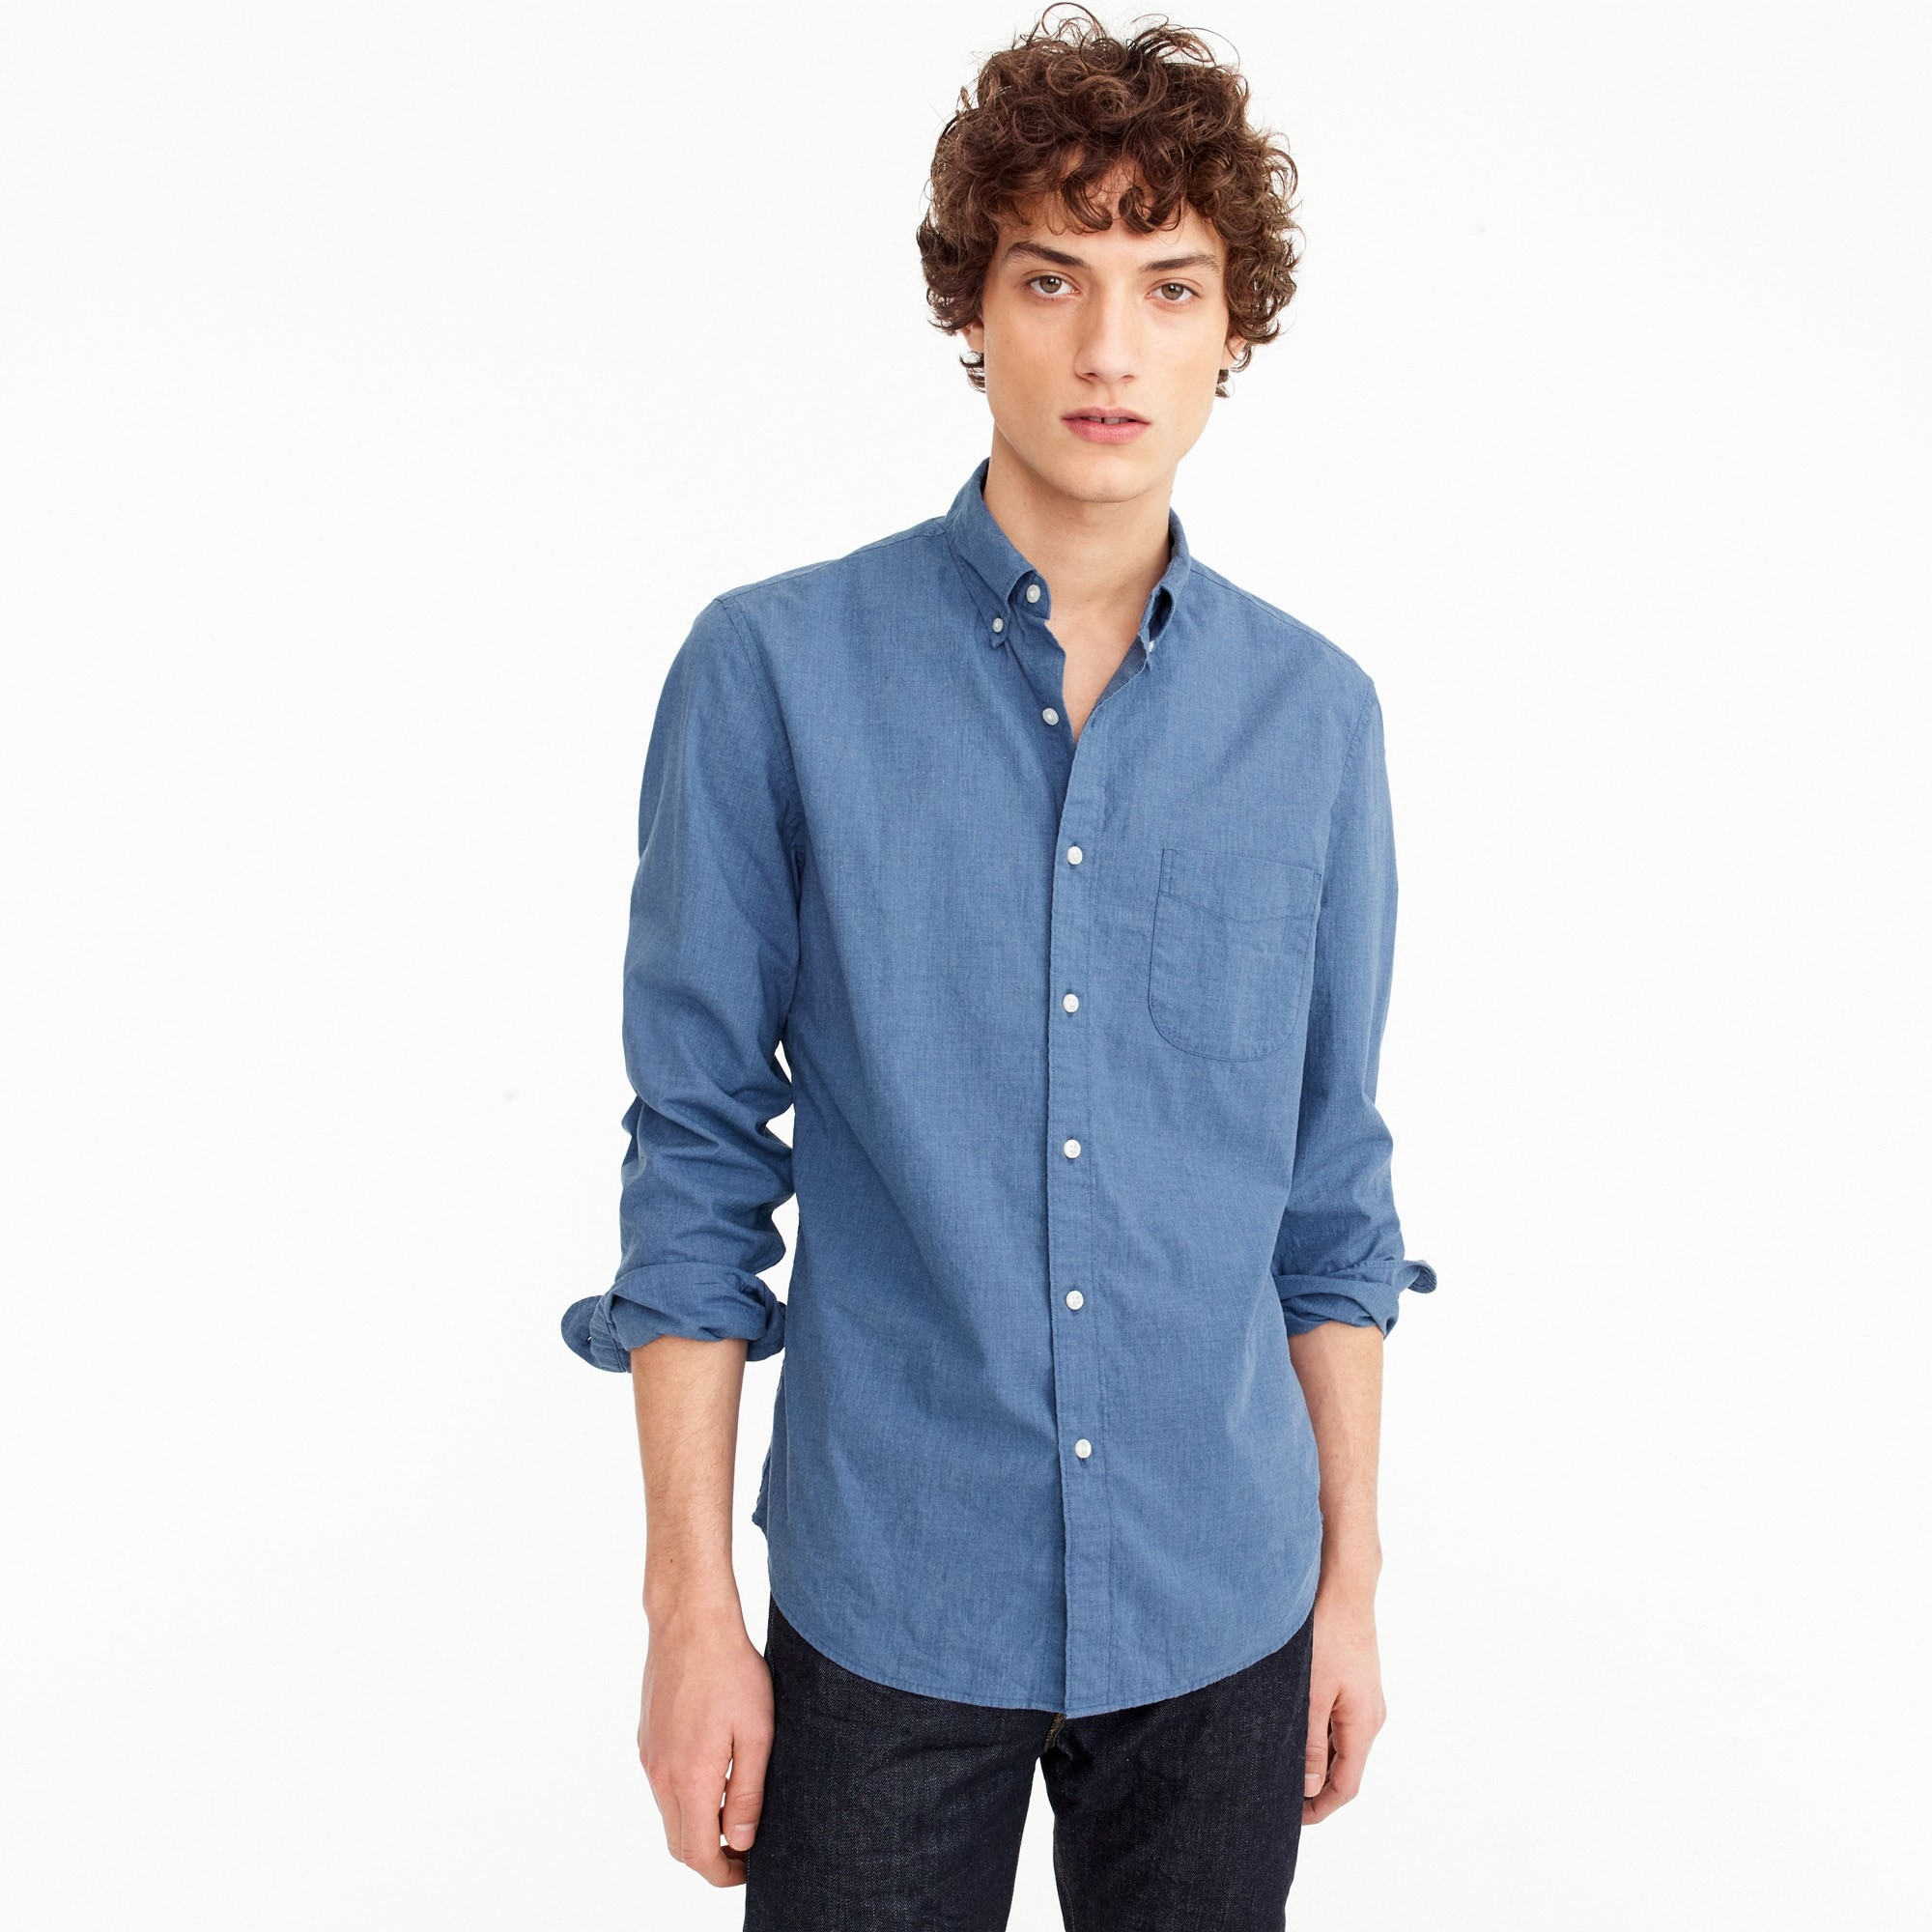 mens Tall stretch Secret Wash shirt in blue heather poplin